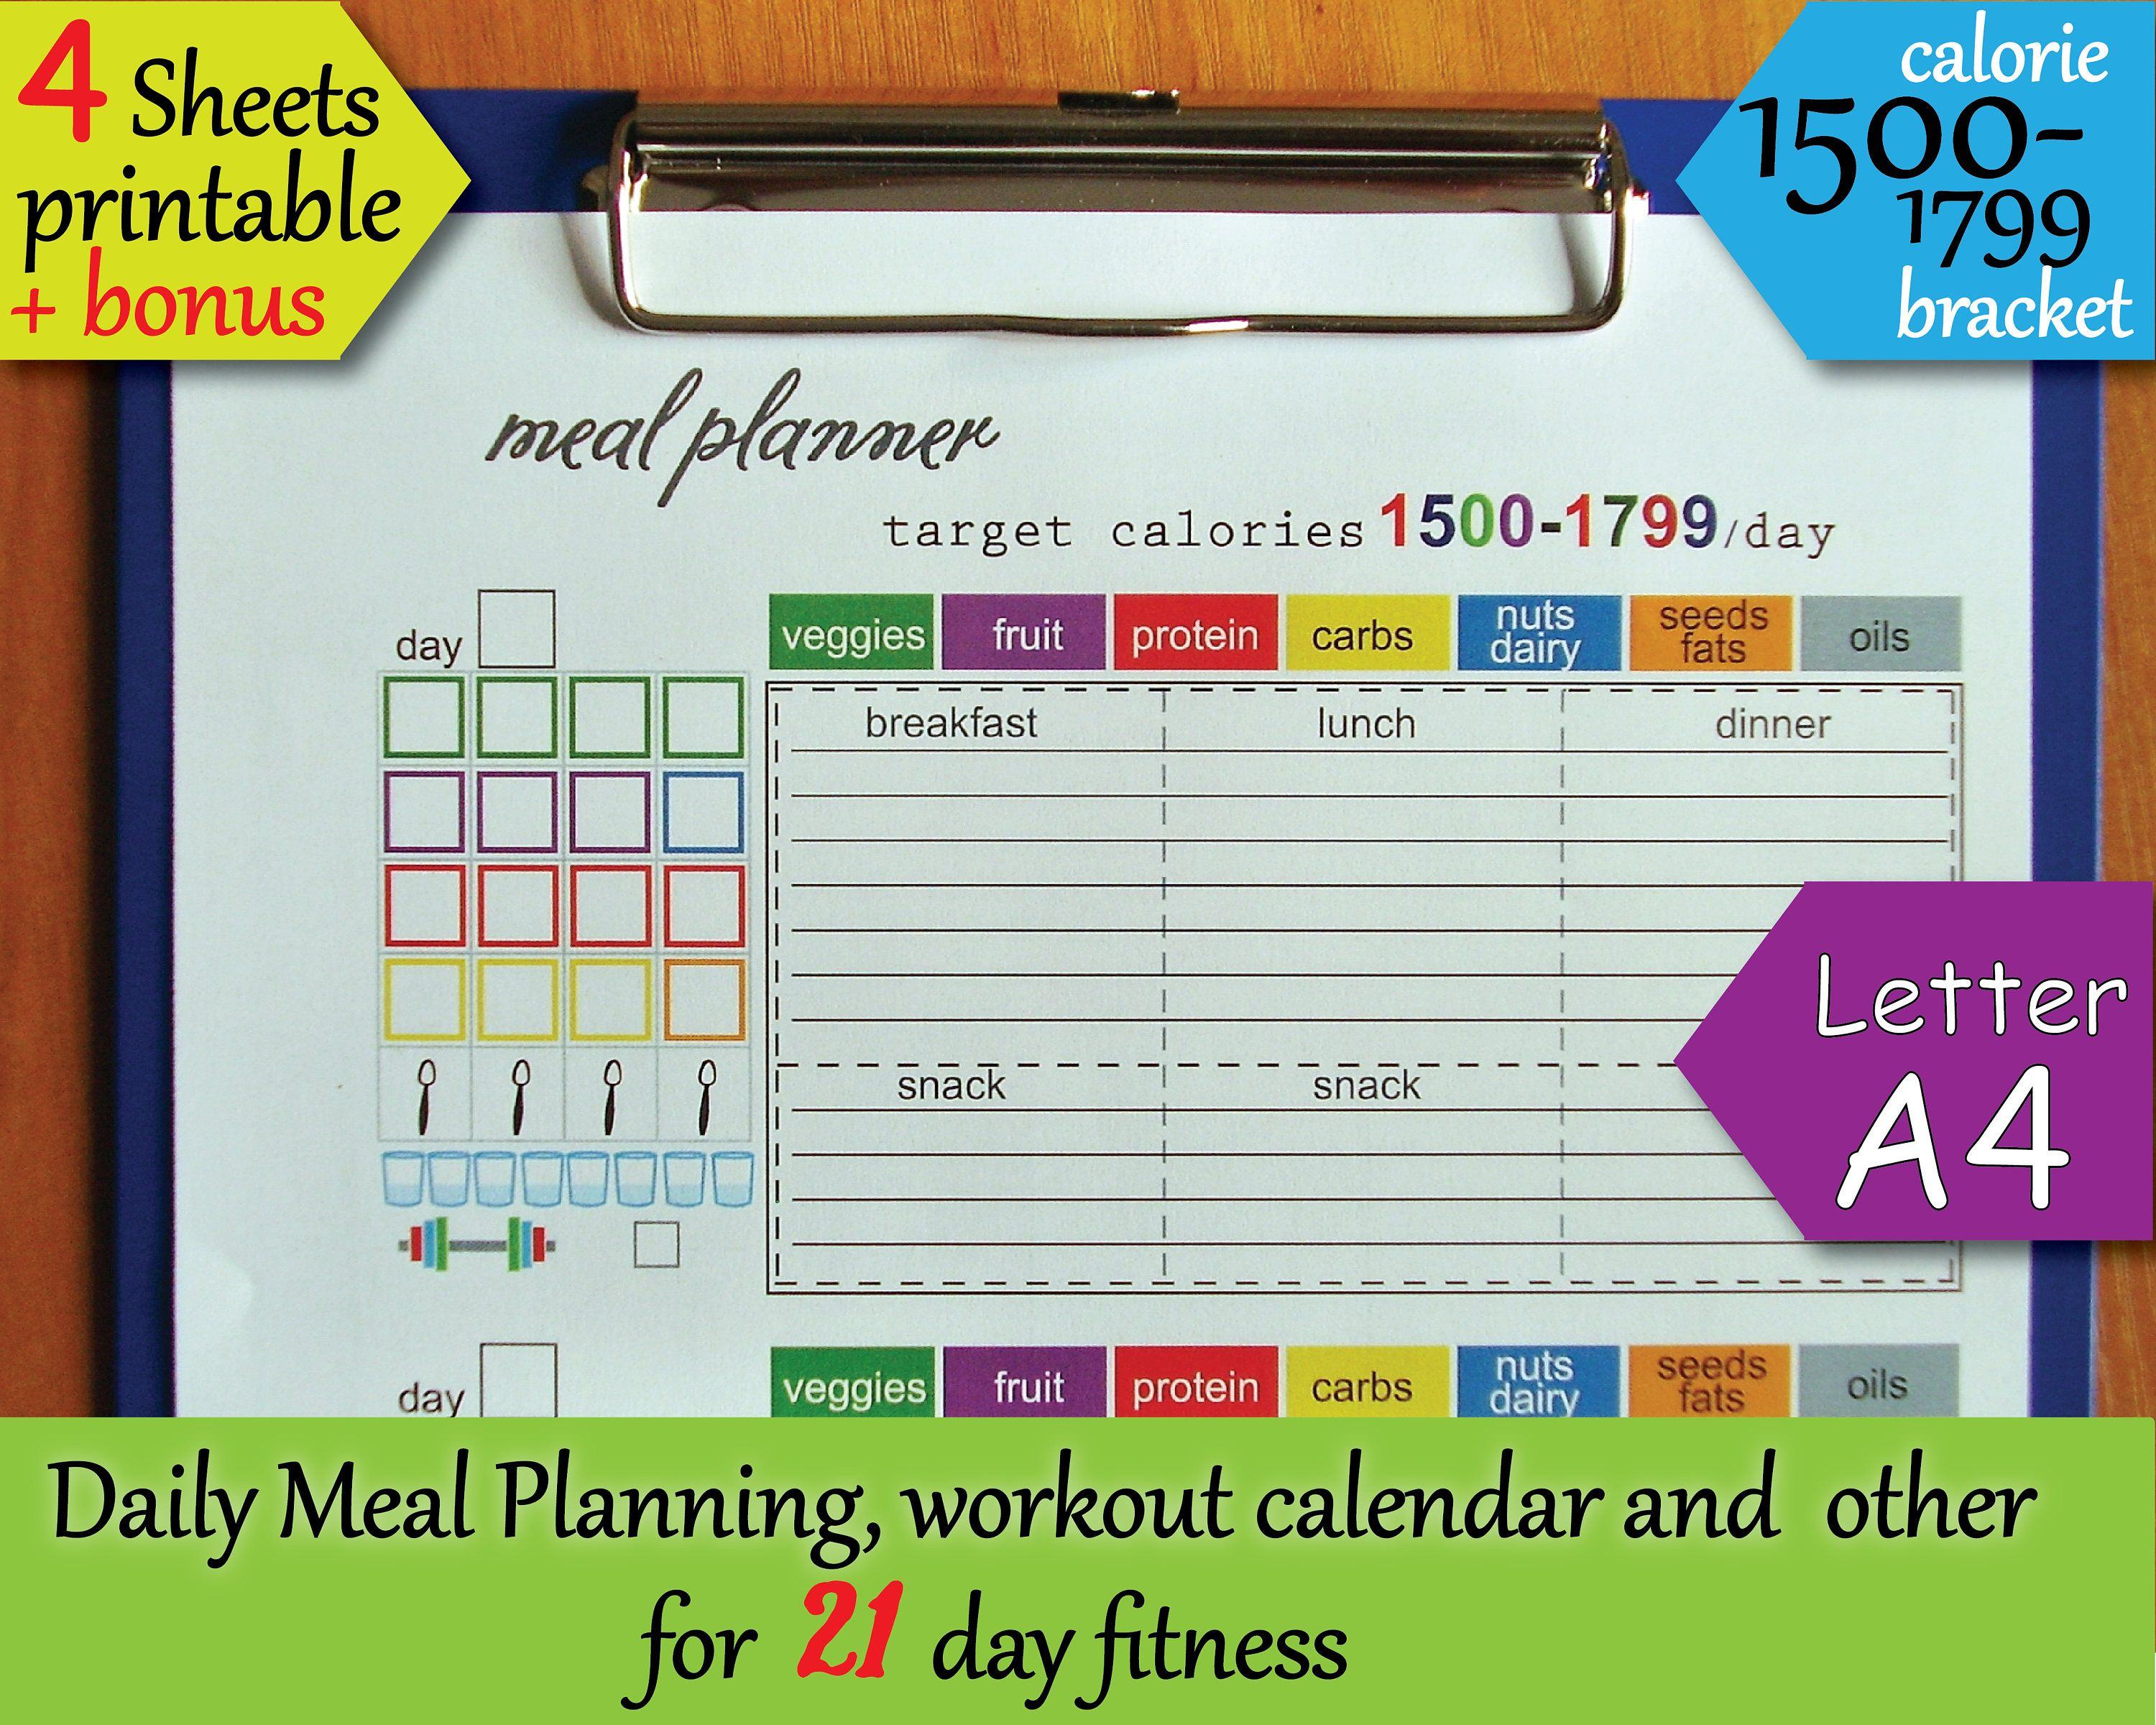 21 day fitness printables tracking sheet 1500 calorie bracket meal